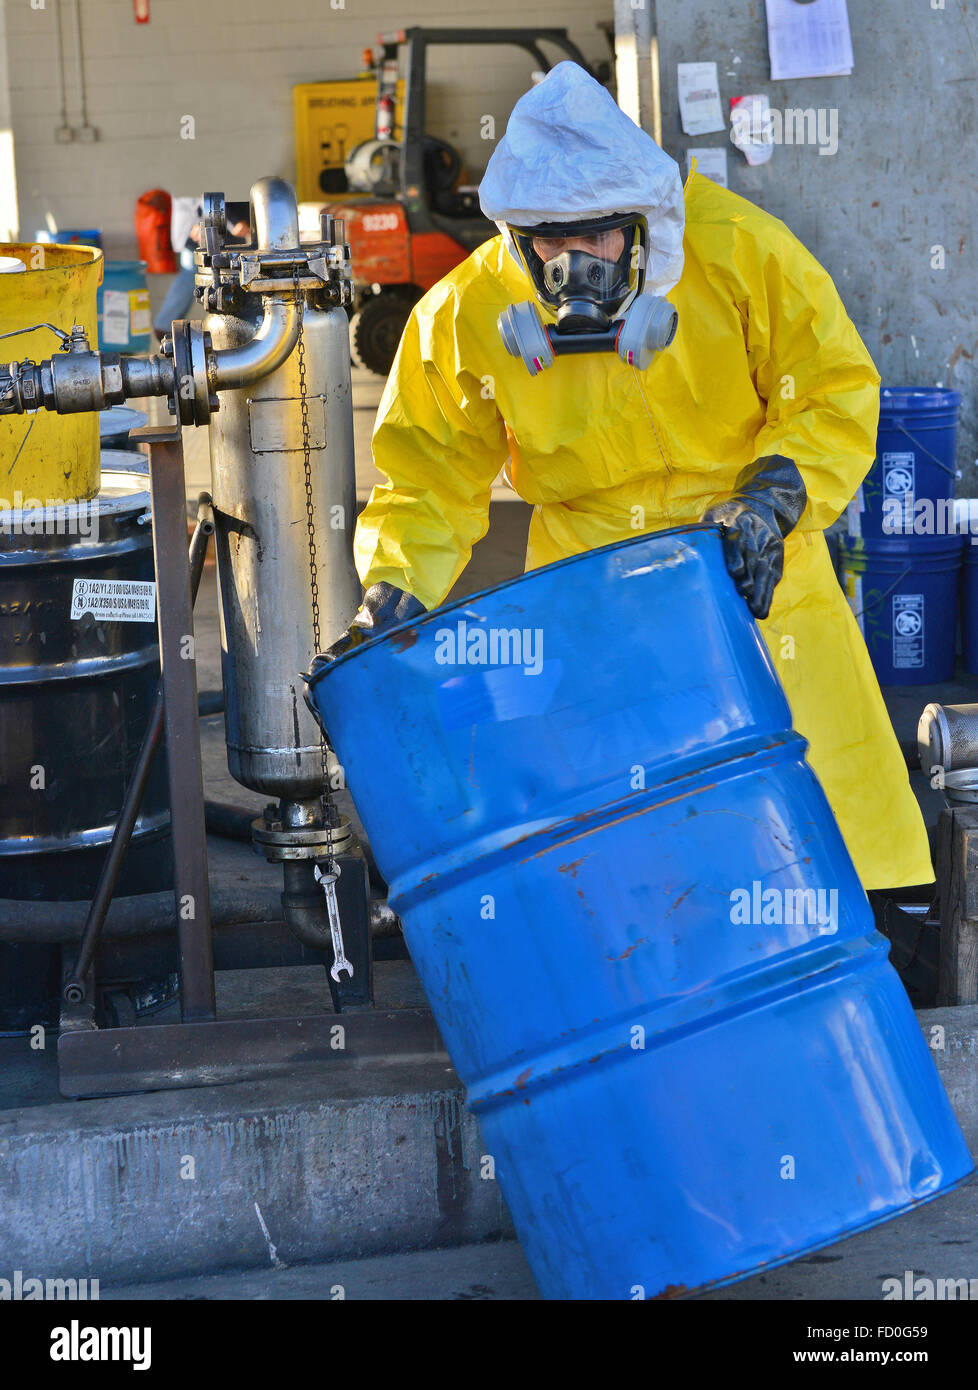 Hazardous containers disposal and handling - Stock Image